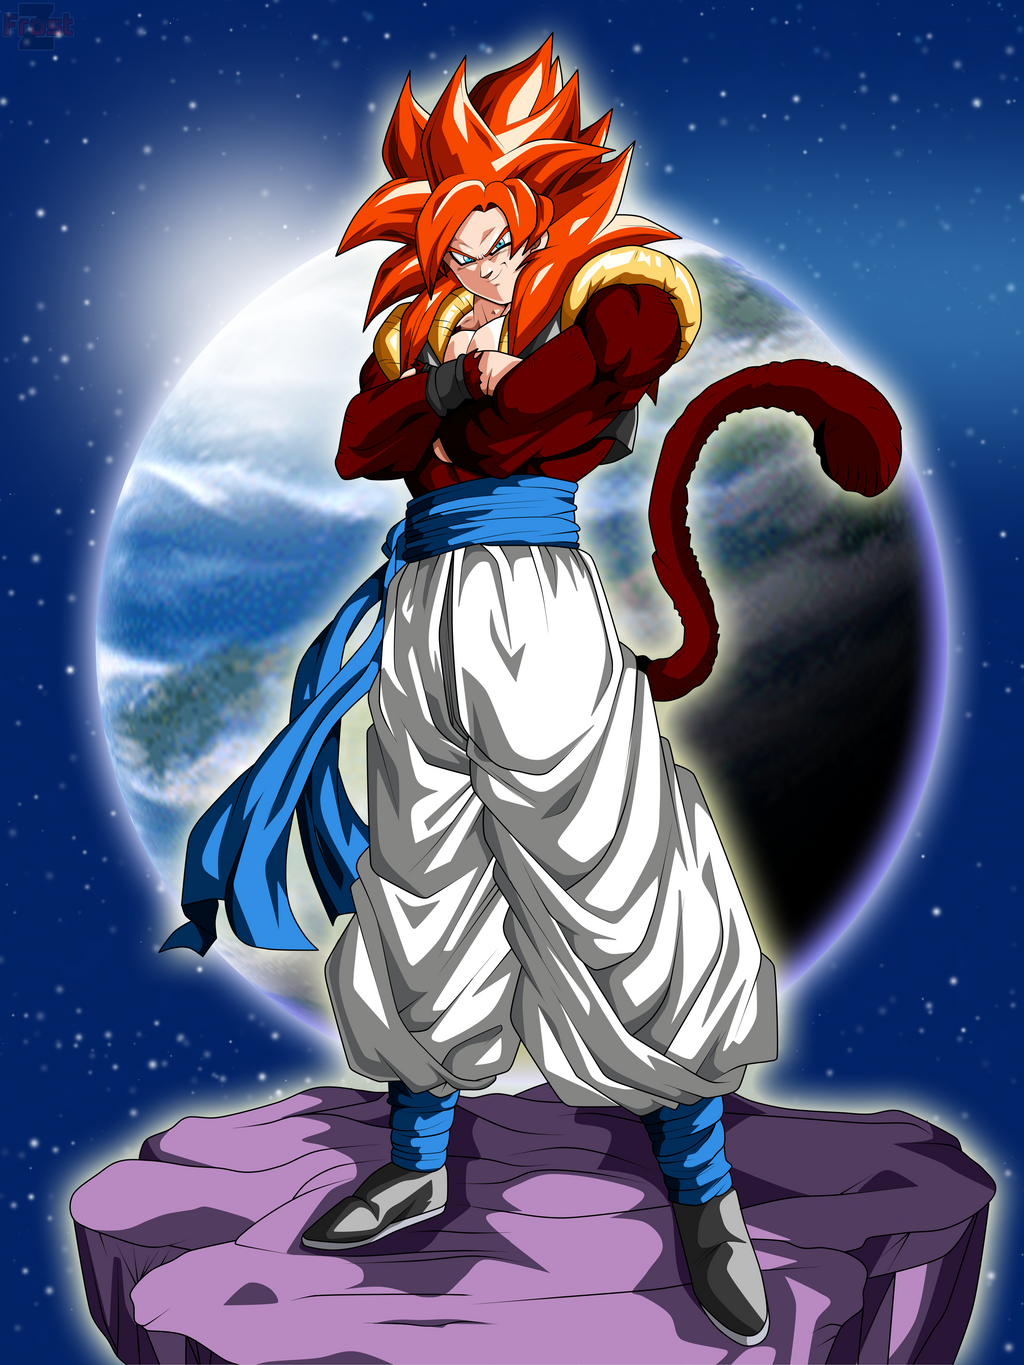 Gogeta super saiyan 4 dragon ball gt by chronofz on - Dragon ball gt goku wallpaper ...